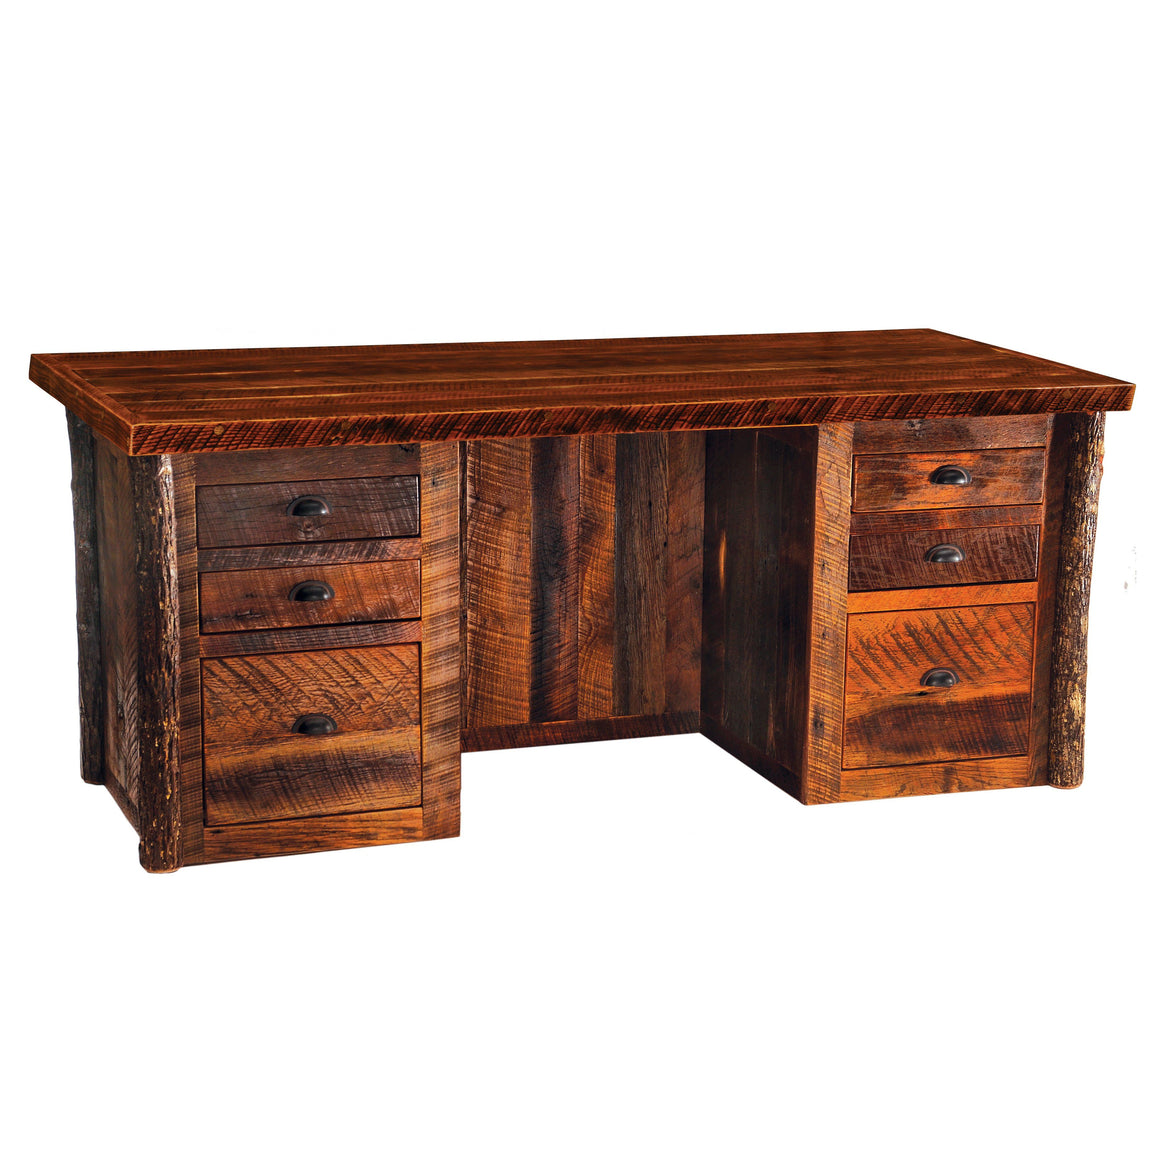 Barnwood Executive Desk - Barnwood Legs - Artisan Top and Antique Oak Top - Rustic Deco Incorporated